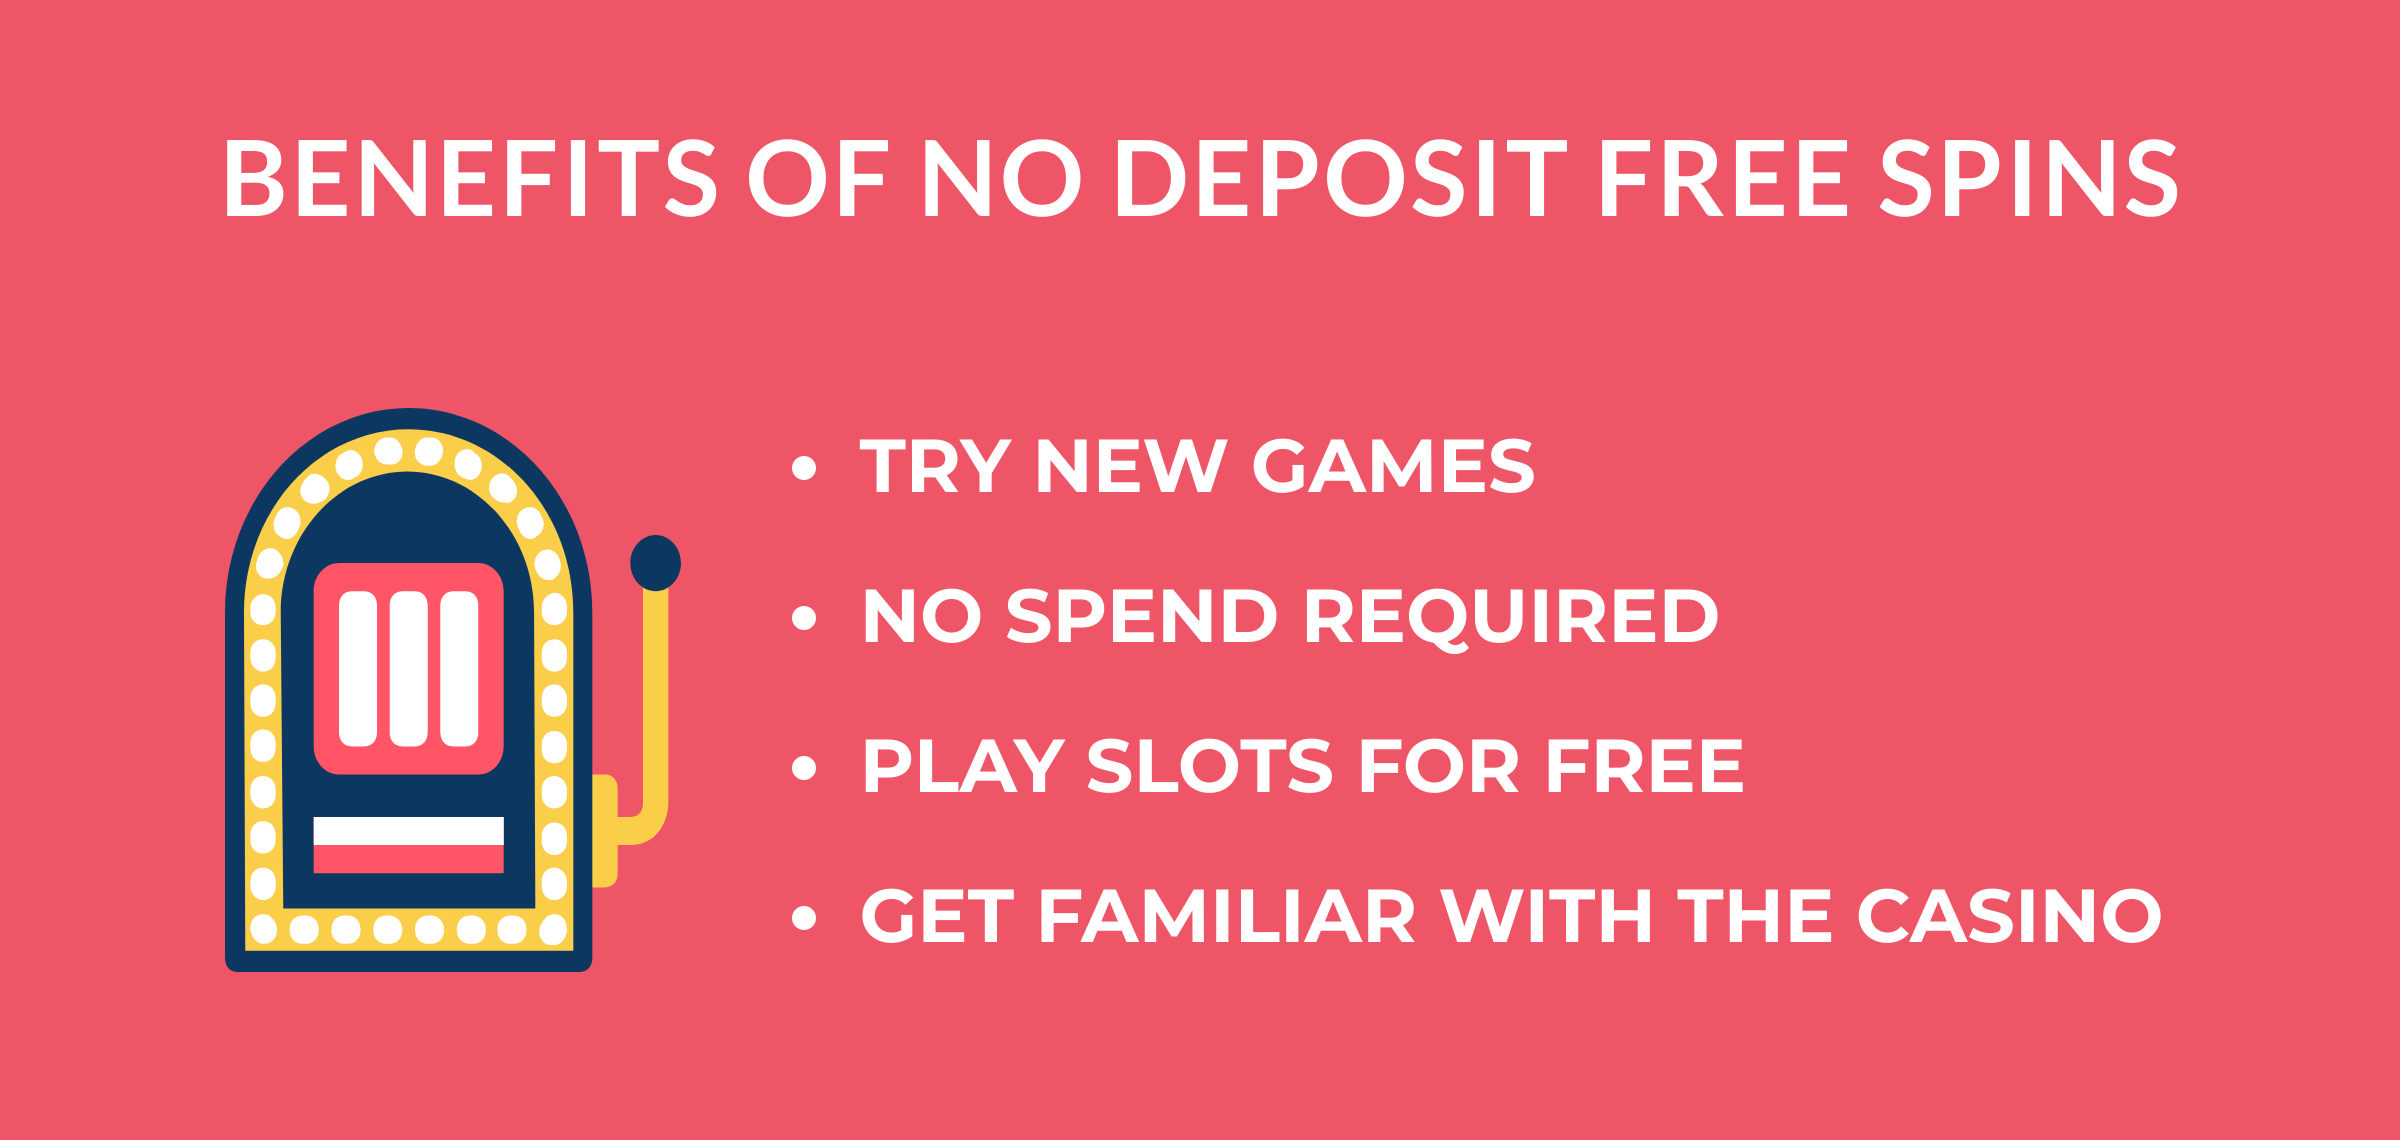 BENEFITS OF NO DEPOSIT FREE SPINS casivo se